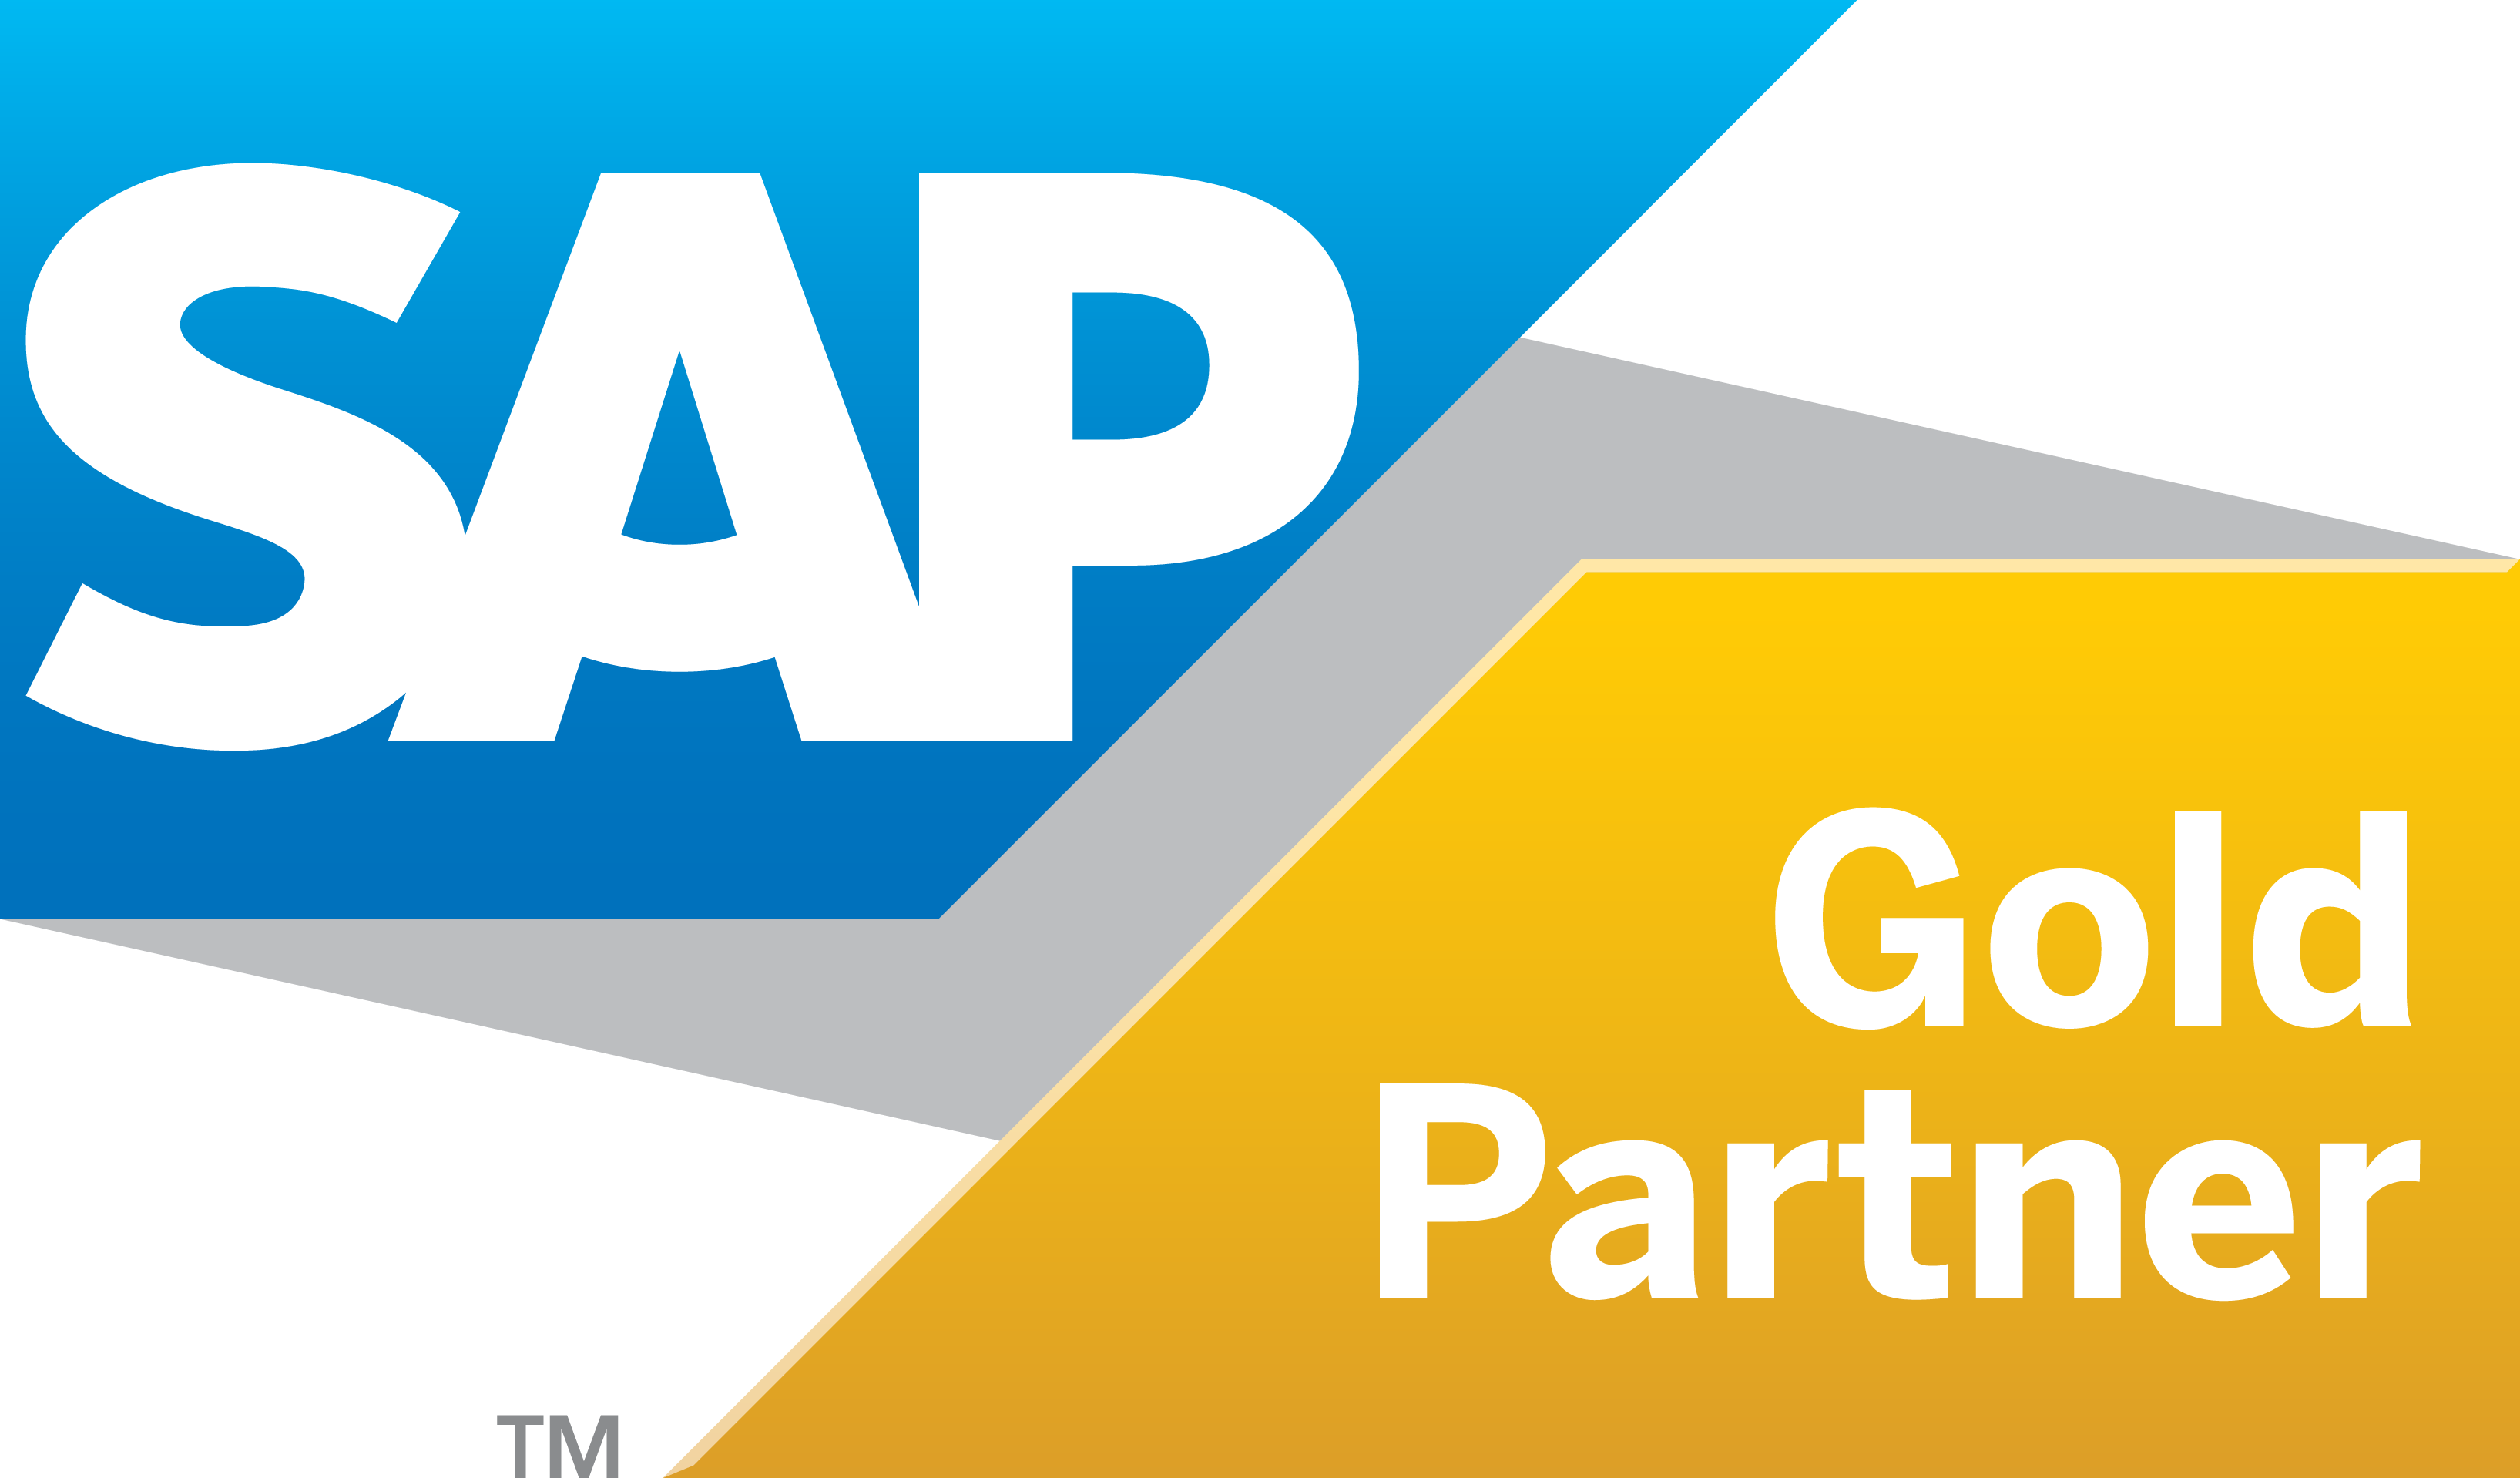 Sap Goldpartner Grad R (2)